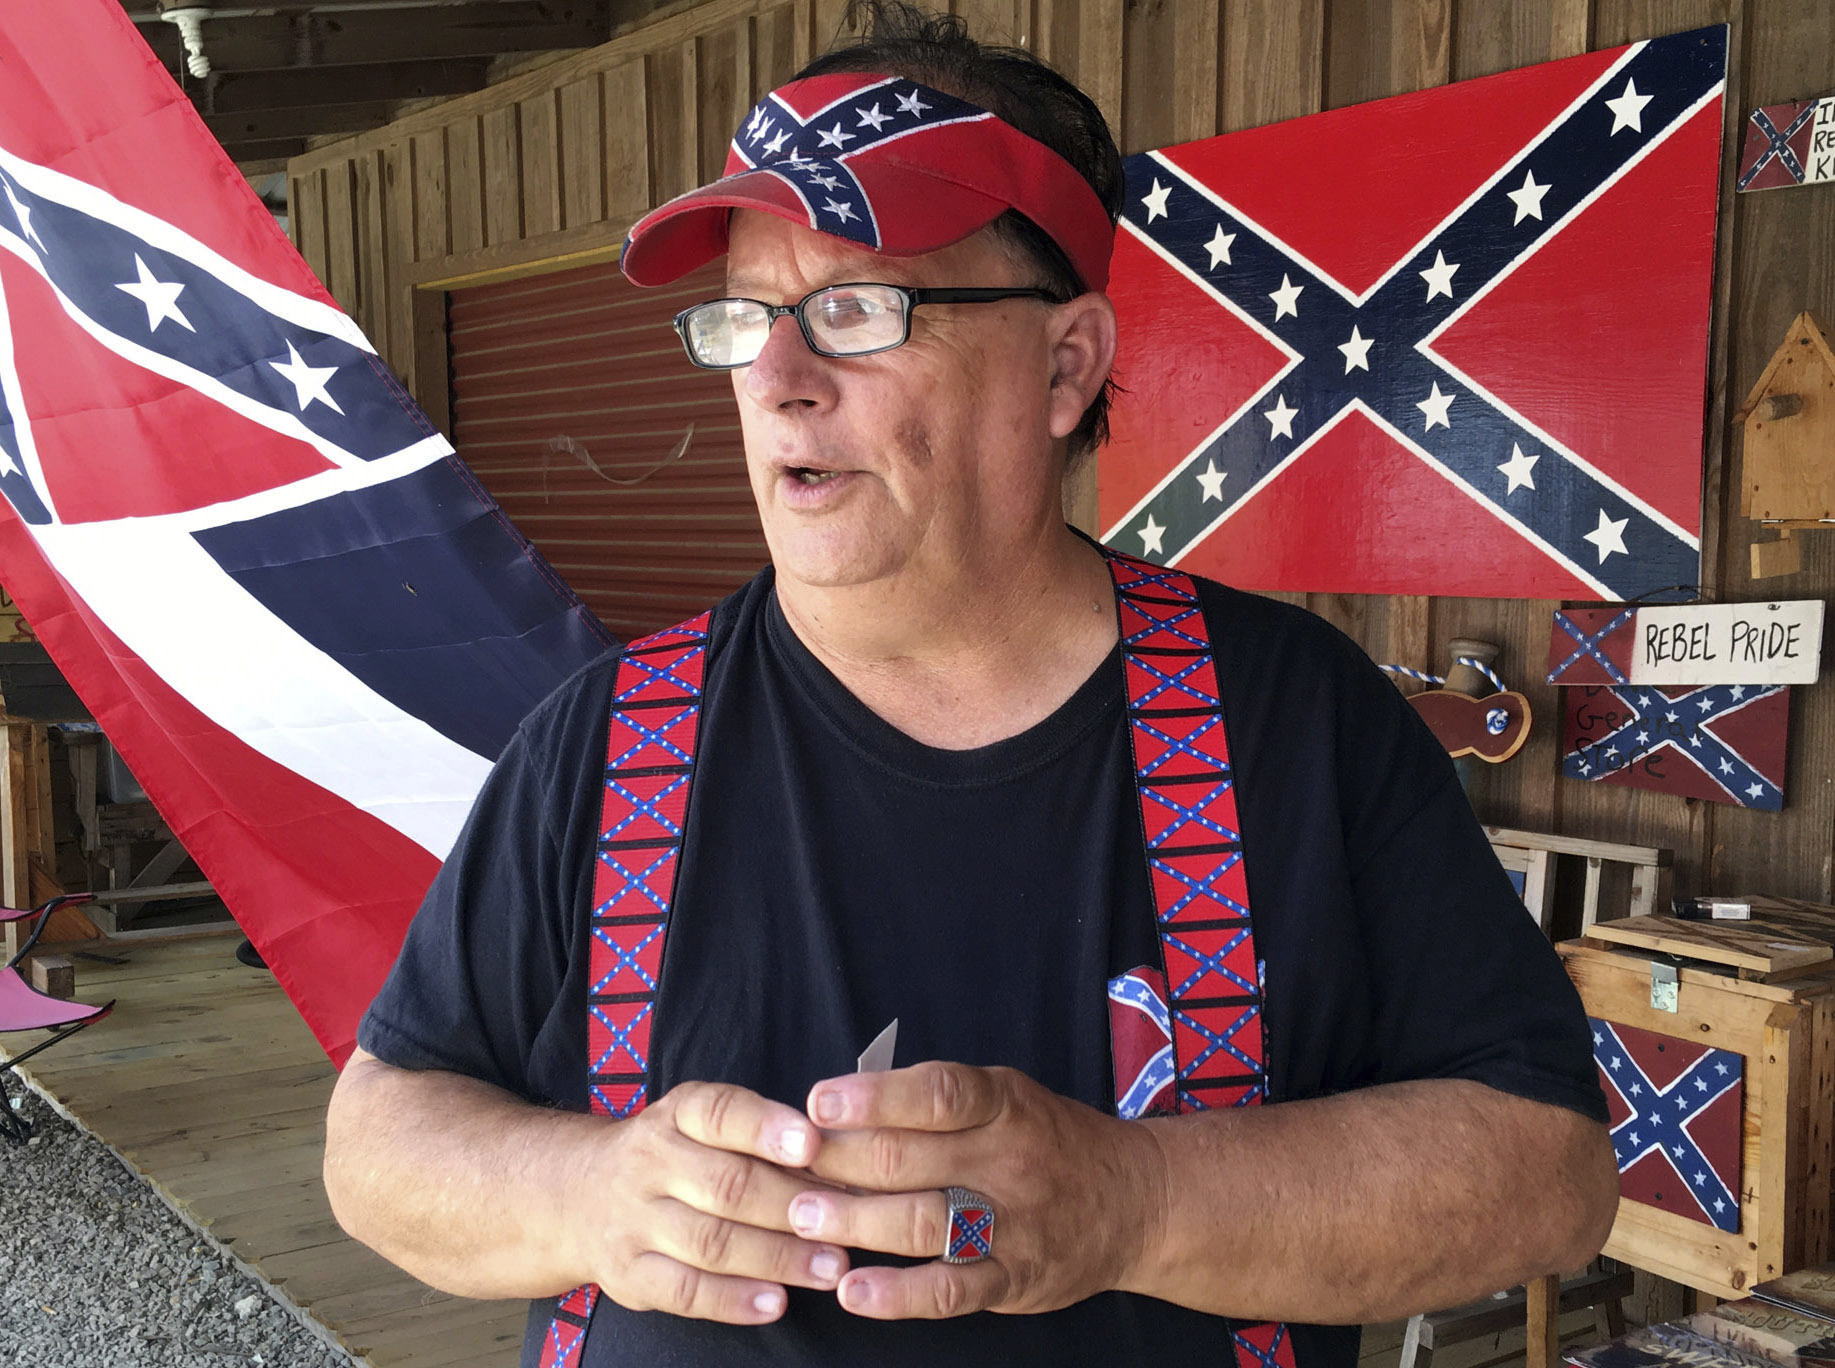 Confederate flag losing prominence 155 years after Civil...